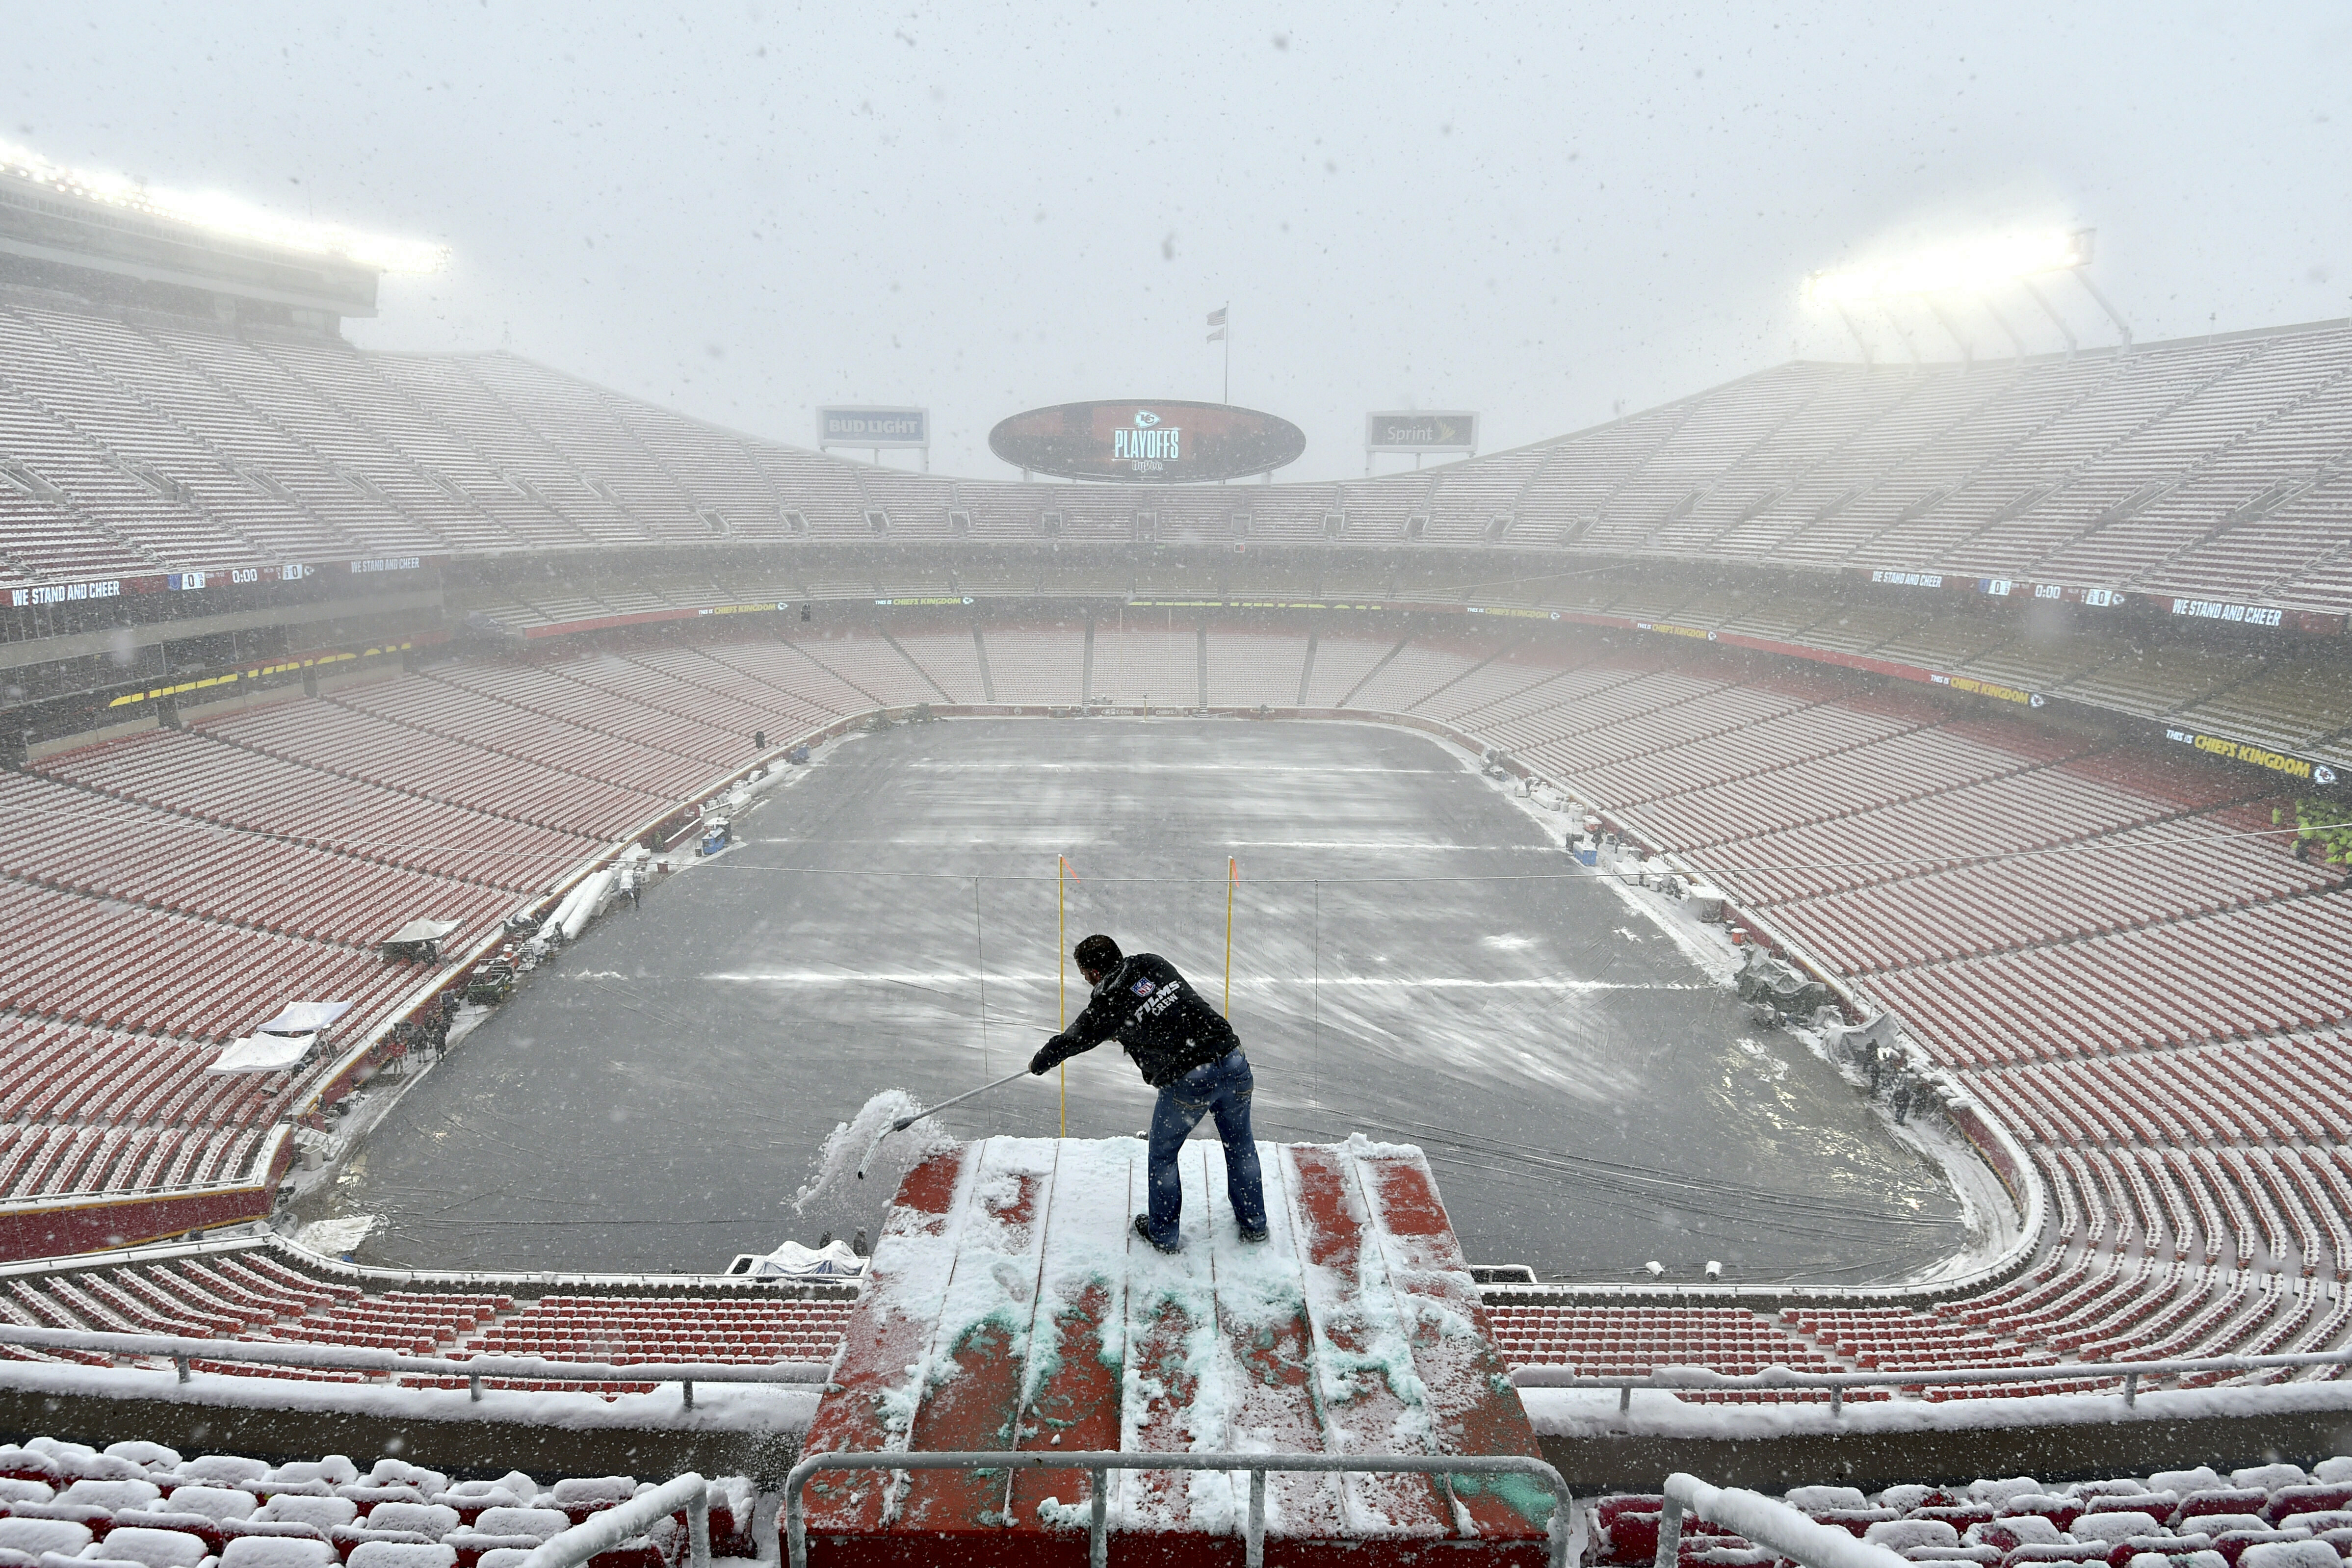 Kyle Haraugh, of NFL Films, clears snow from a camera location at Arrowhead Stadium before an NFL divisional football playoff game between the Kansas City Chiefs and the Indianapolis Colts, in Kansas City, Mo., Jan. 12, 2019.